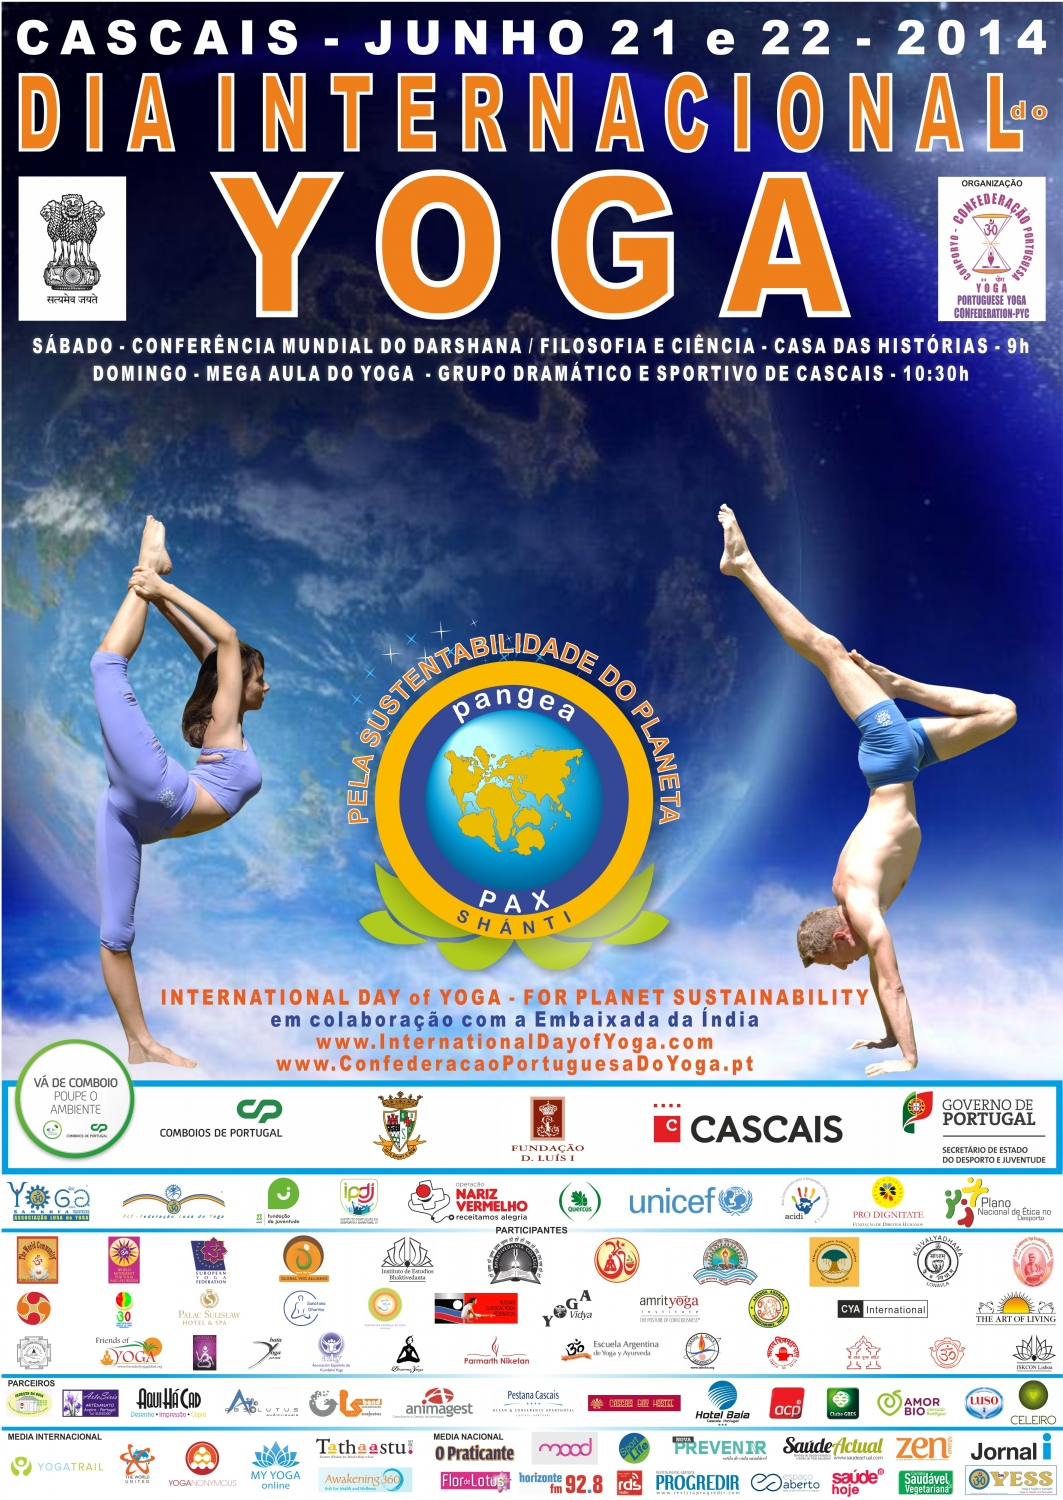 International Day of Yoga - IDY - 2014, Cascais